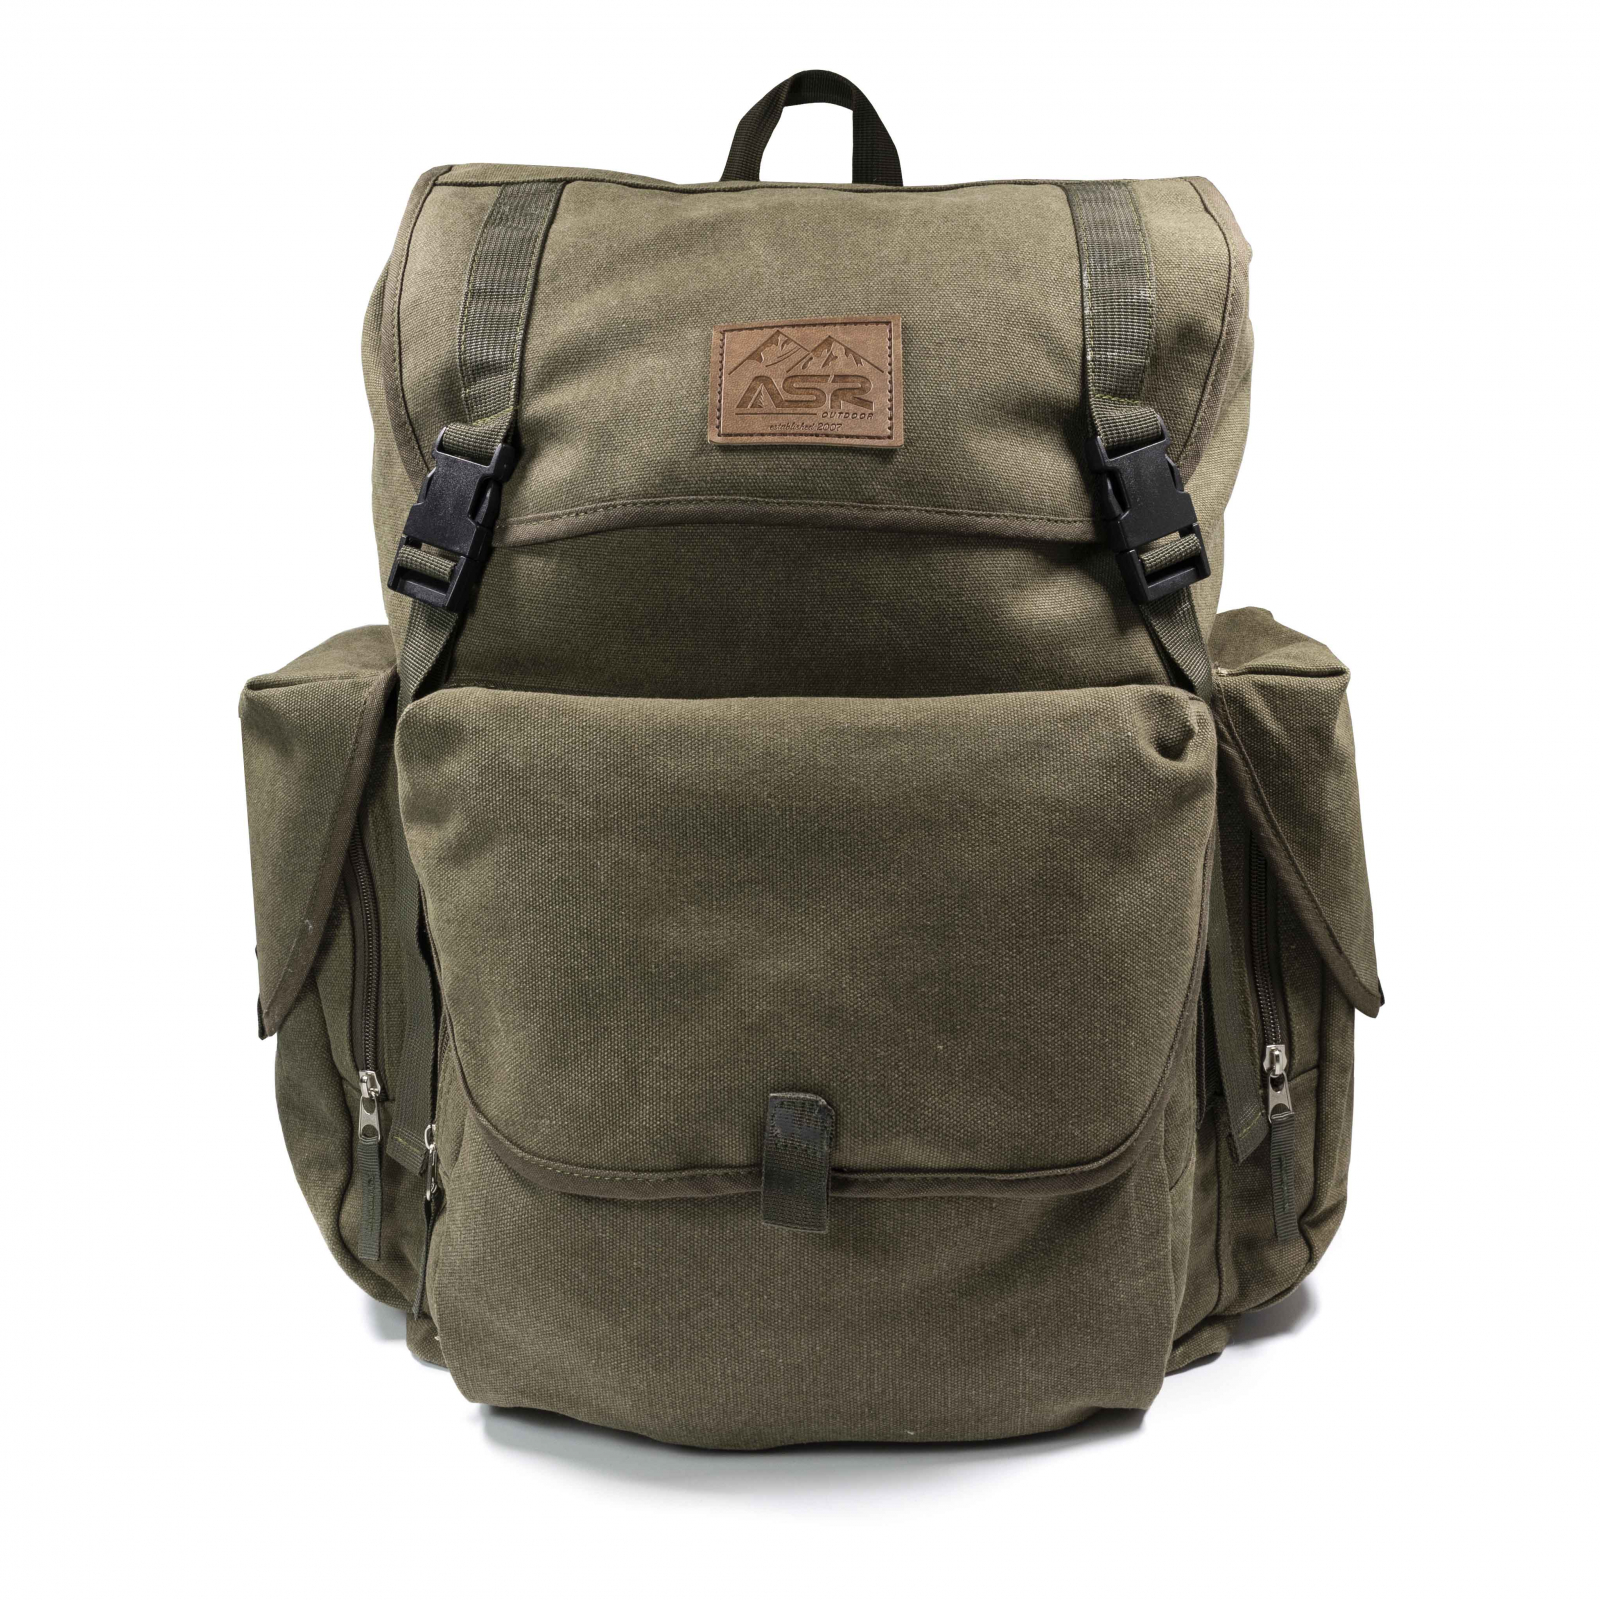 ASR Outdoor 30L Cotton Hiking Gold Panning Camping Travel Backpack Rucksack, Green